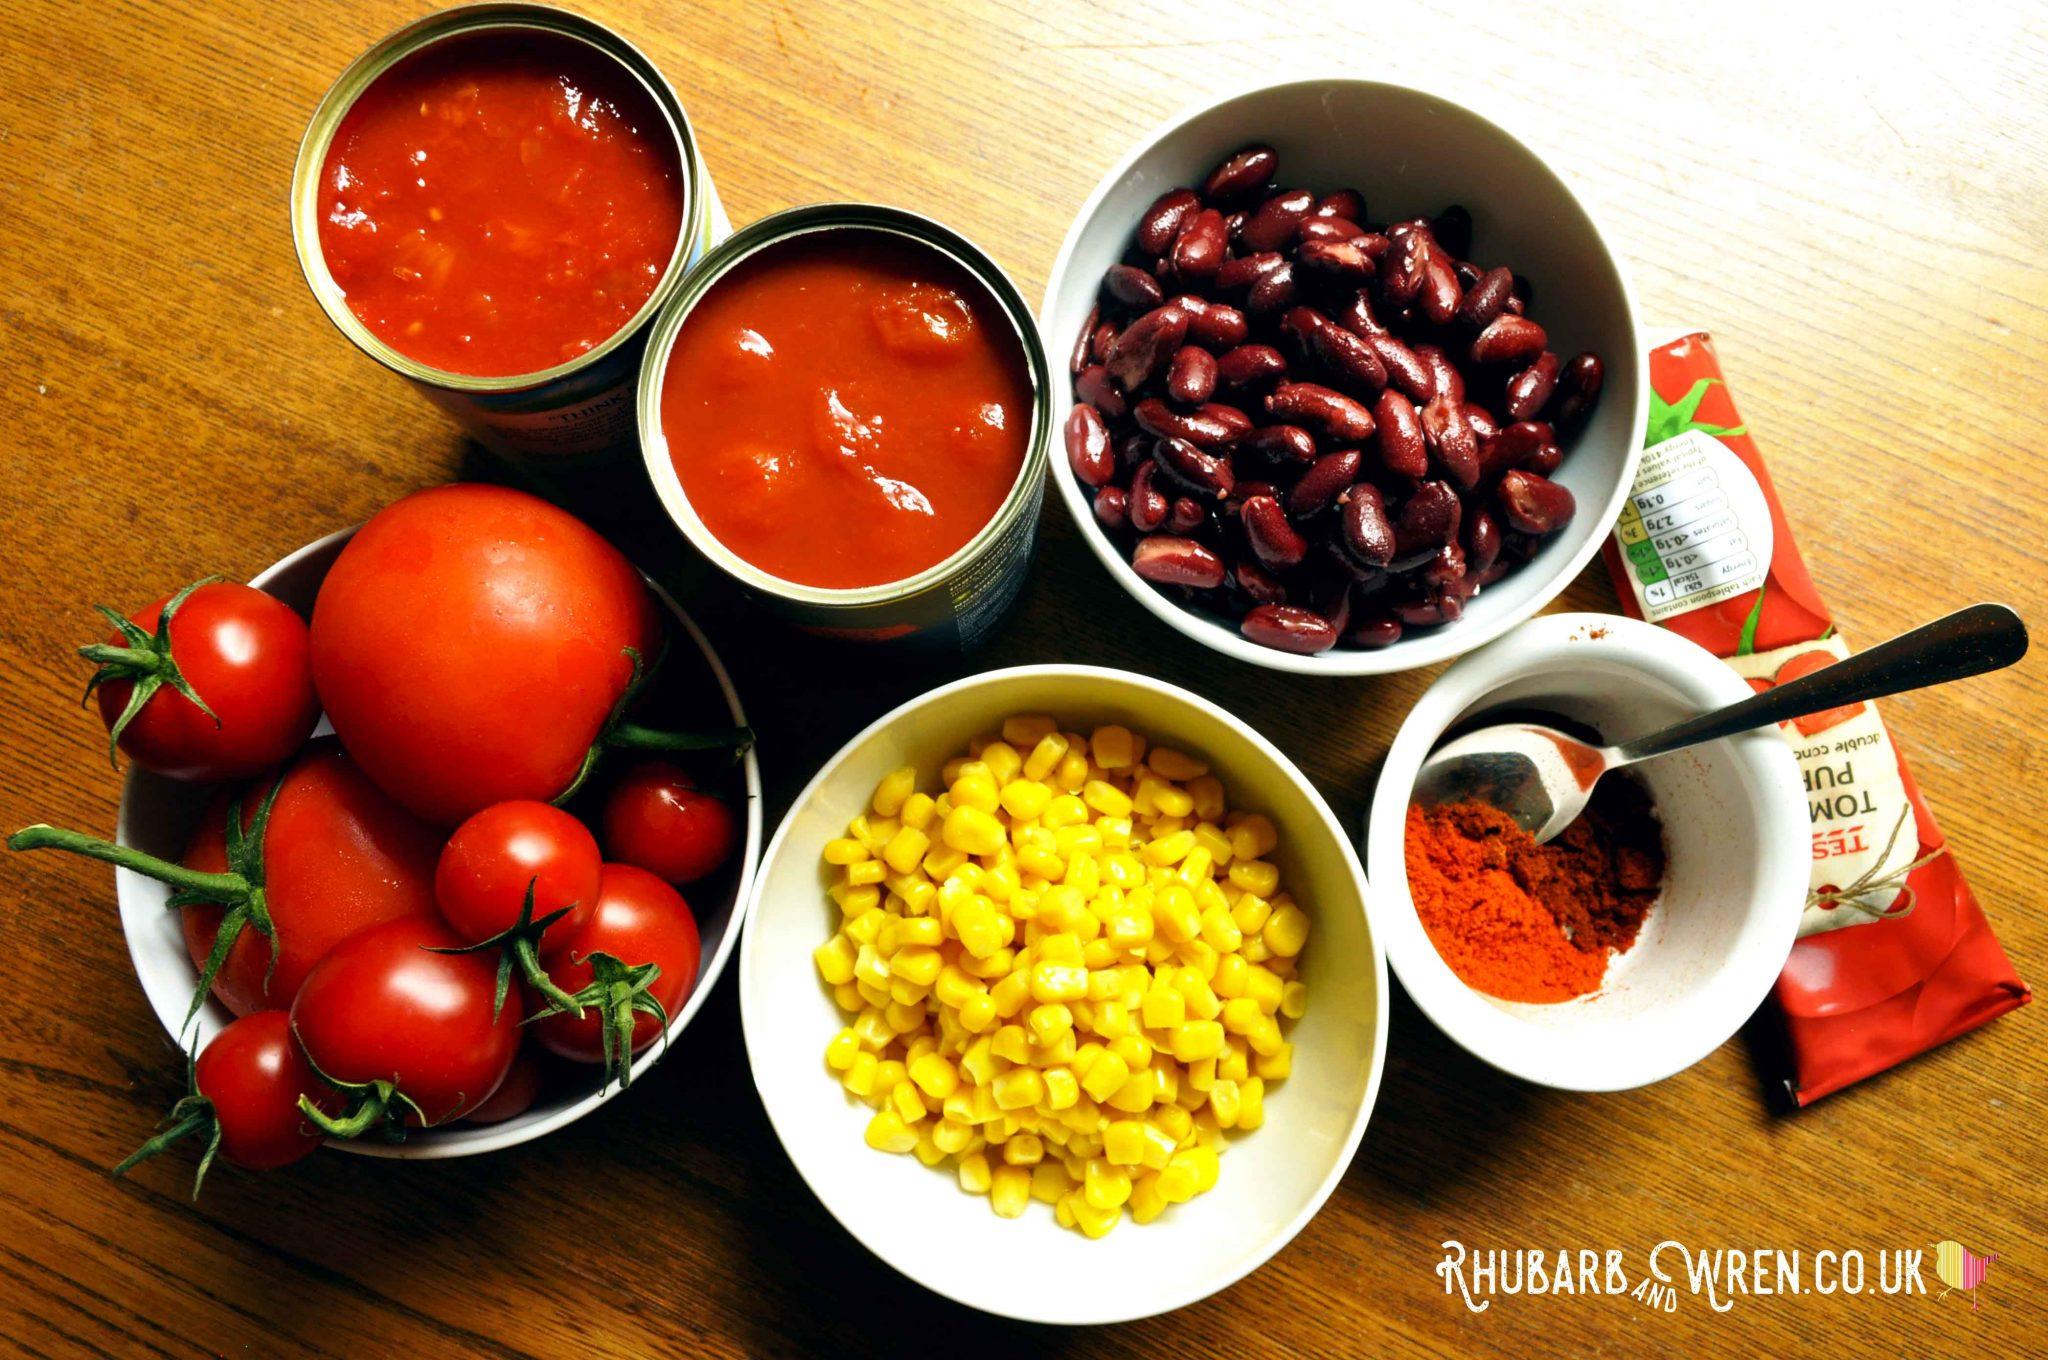 Tomatoes, sweetcorn, kidney beans and spices - ingredients for a vegan chili